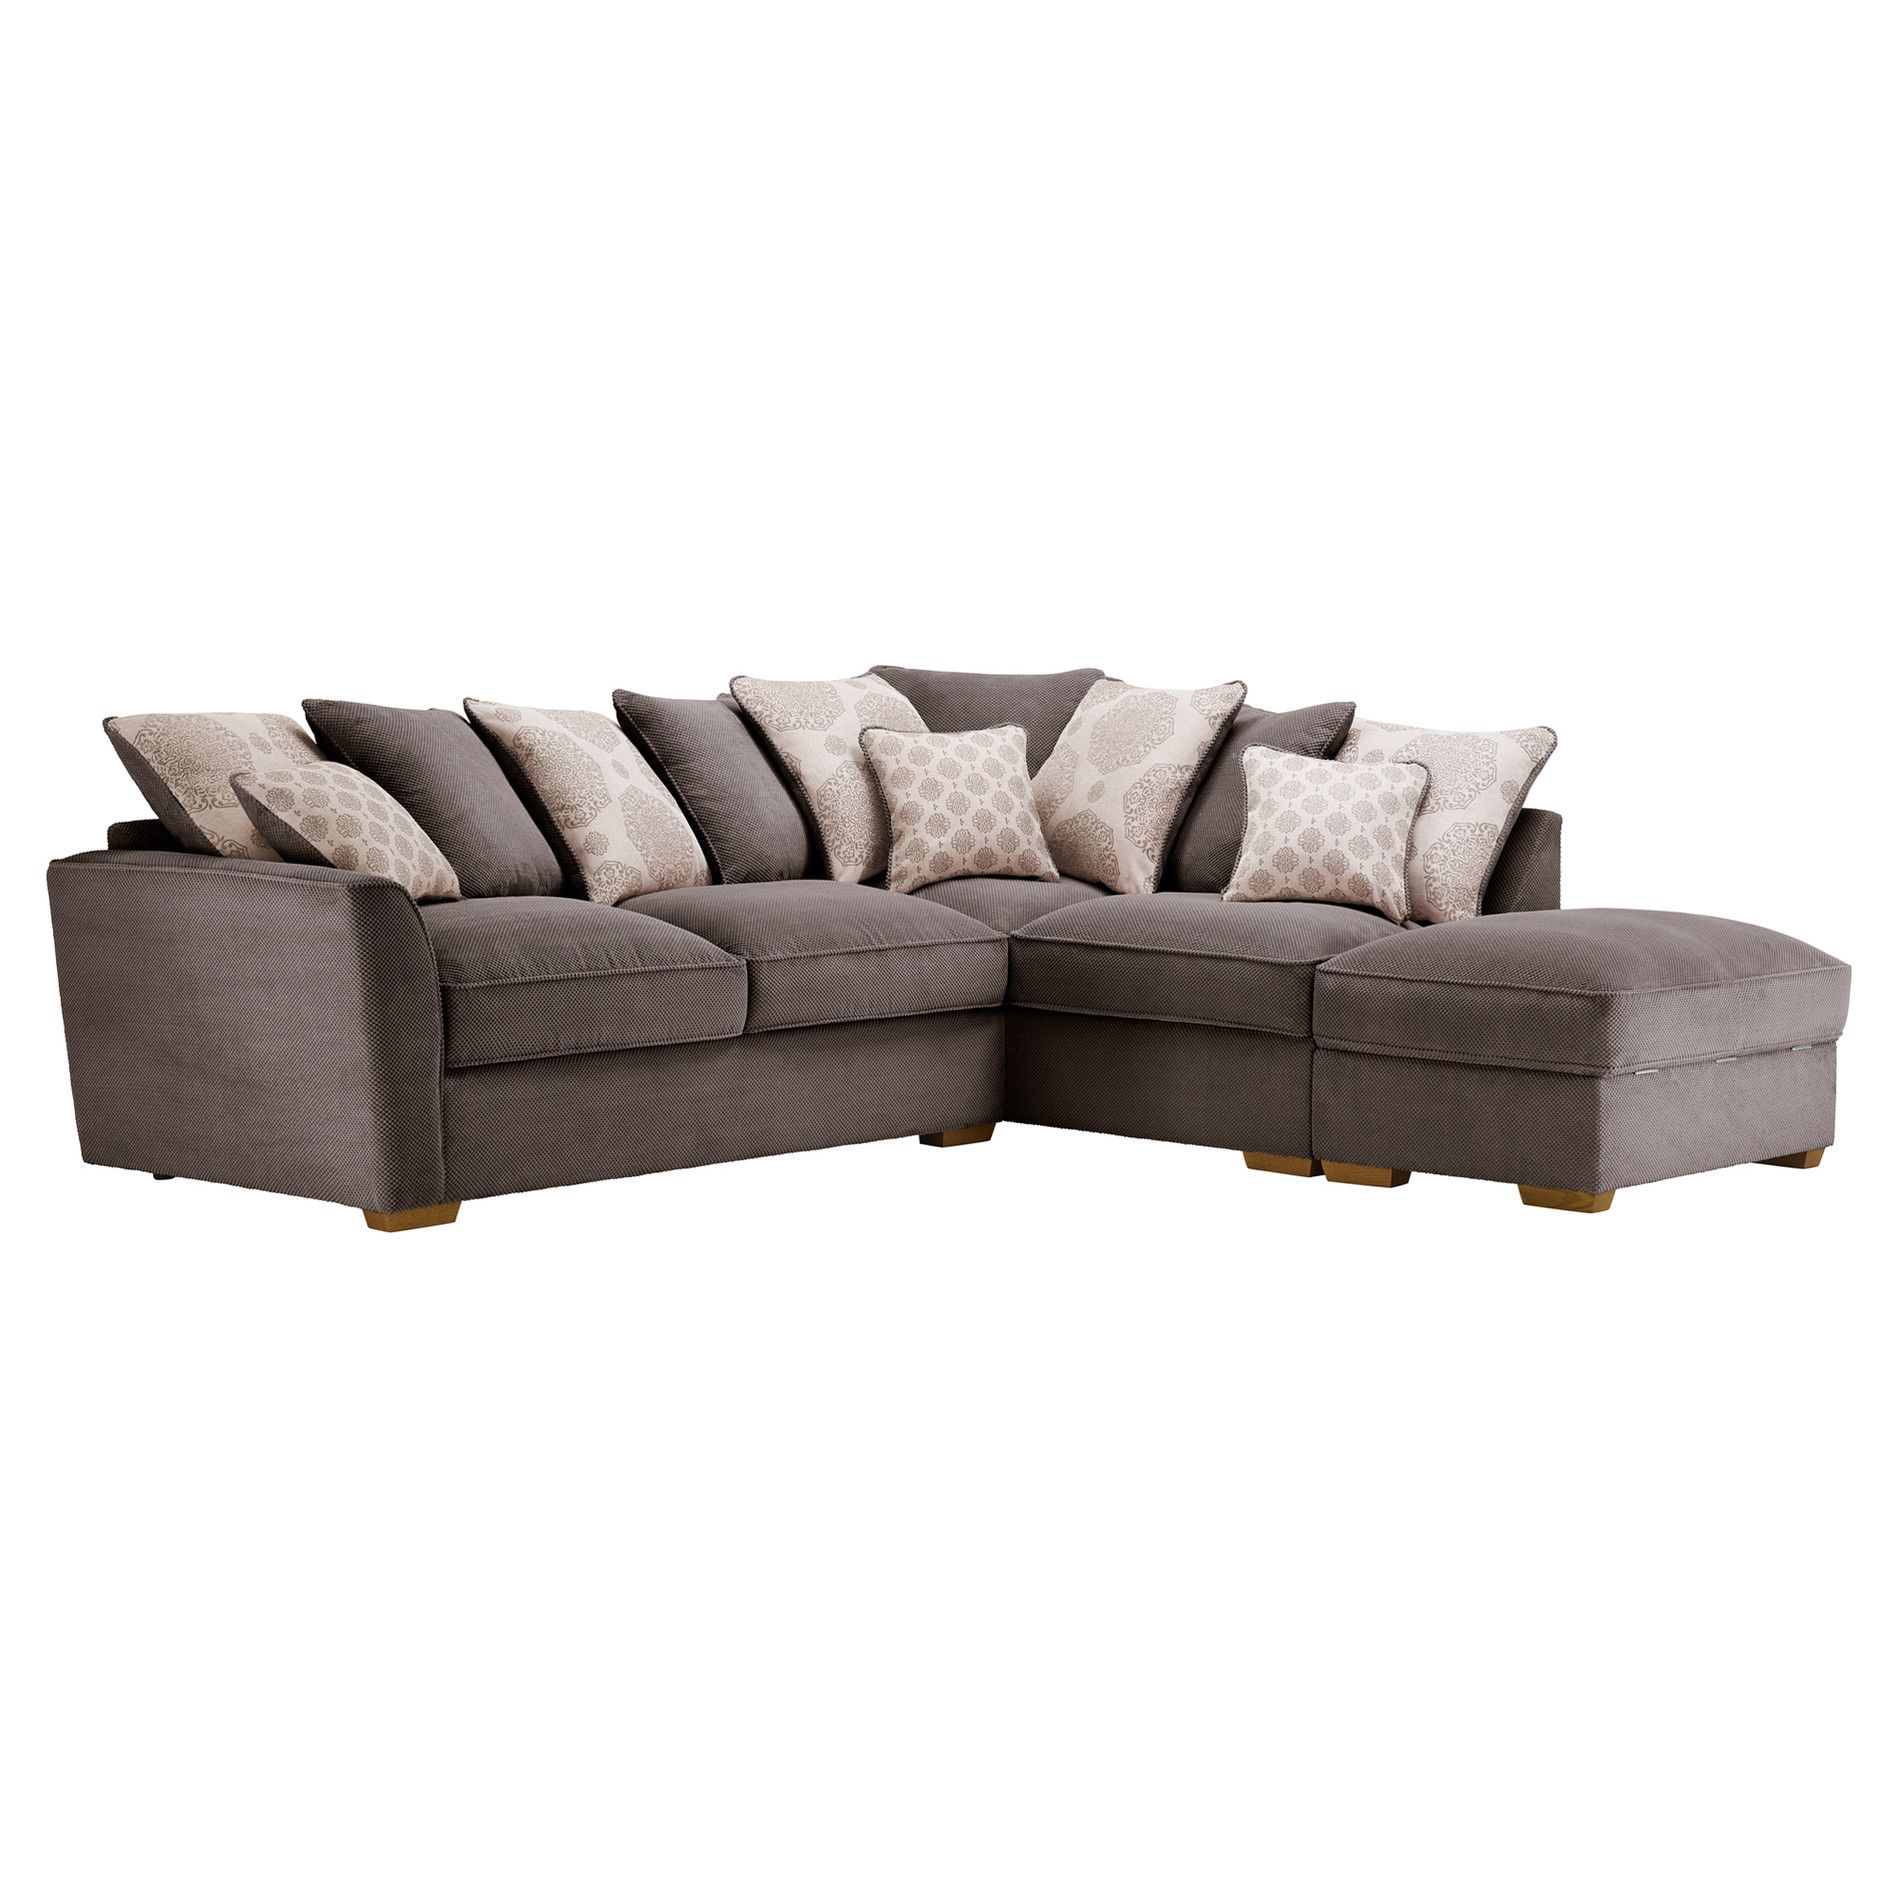 Nebraska Corner Pillow Back Sofa With Storage Footstool Left Hand In Aero Charcoal With Silver Corner Sofa With Storage Corner Sofa And Footstool Sofa Storage